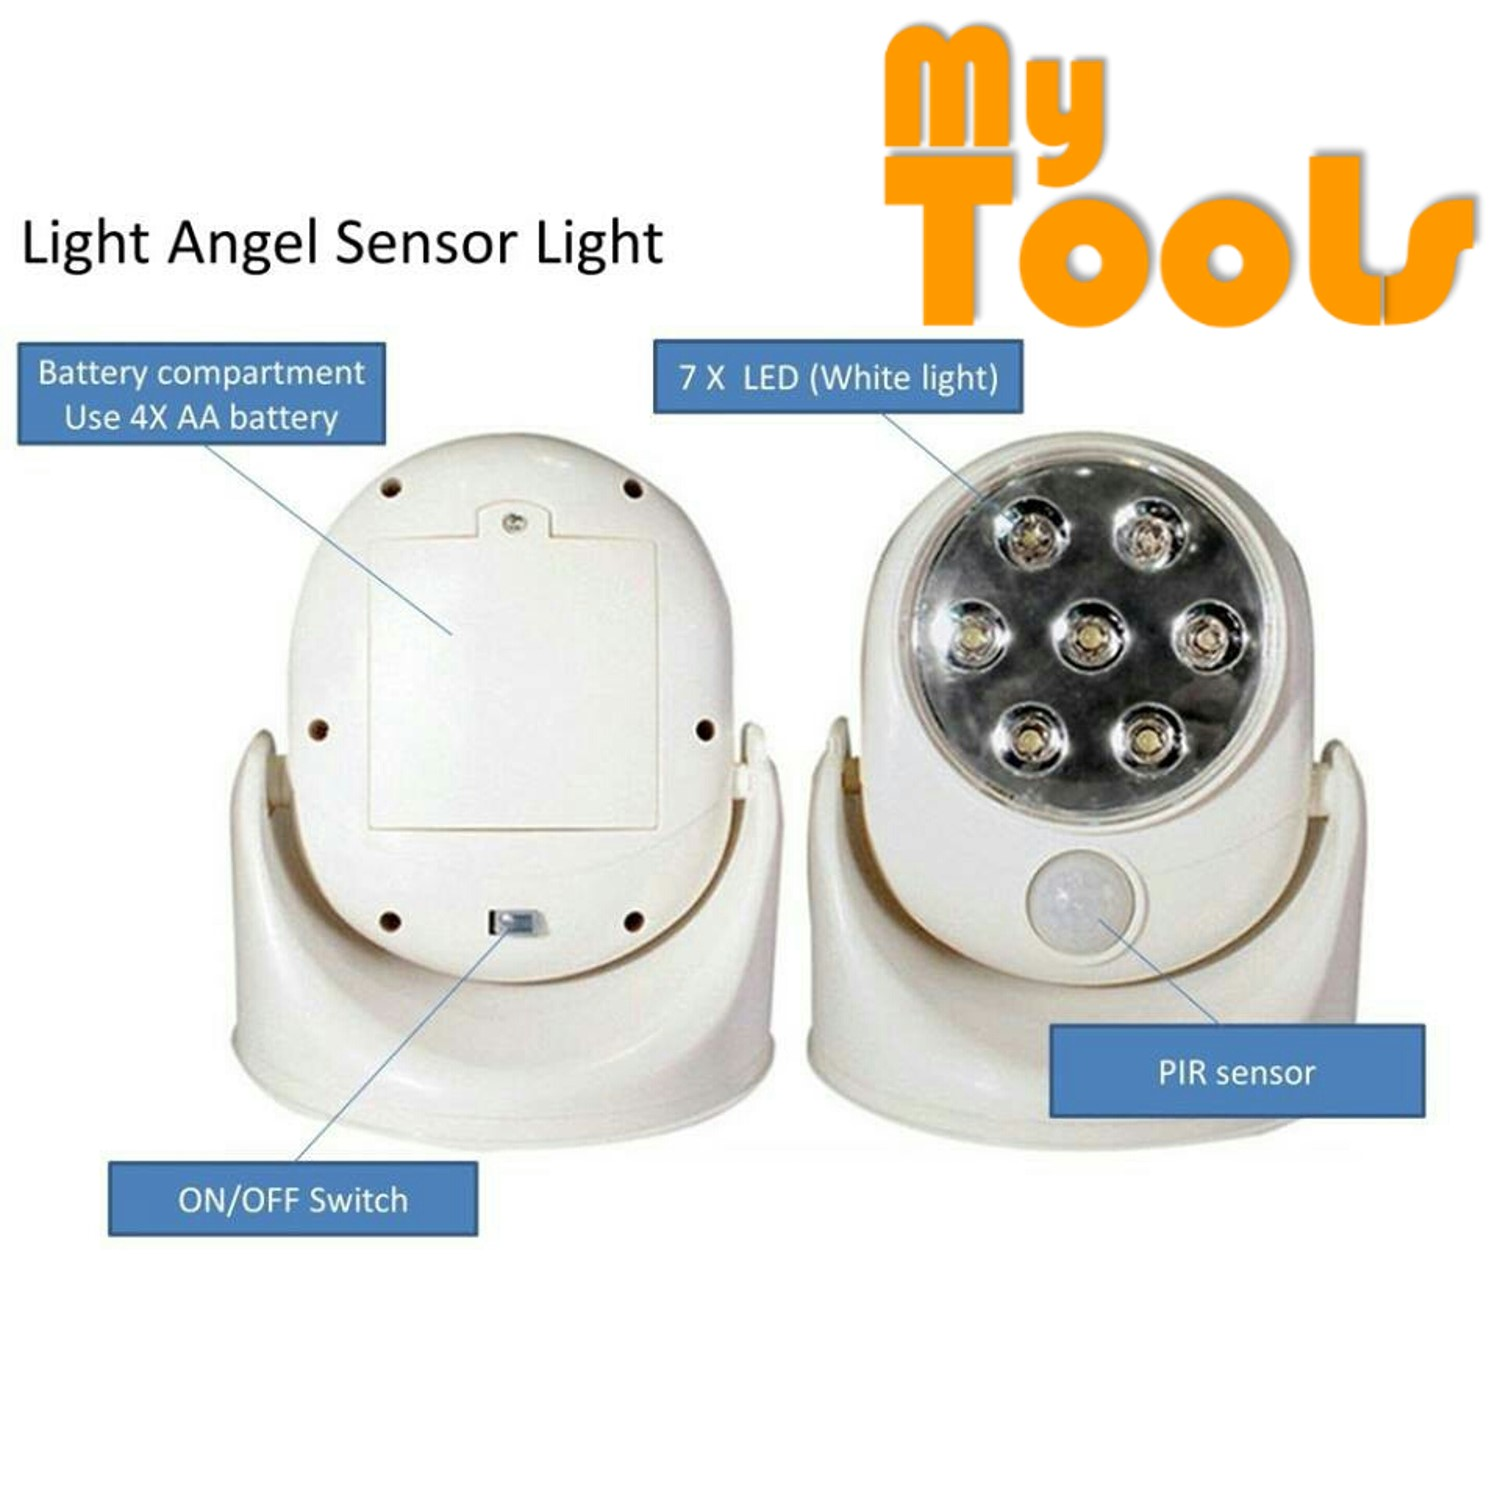 Light Angel Motion Sensor Activated Cordless Wireless Bright 7 LED Indoor Outdoor Night Security Safety Lamp Automatic with 360 Degree Rotation